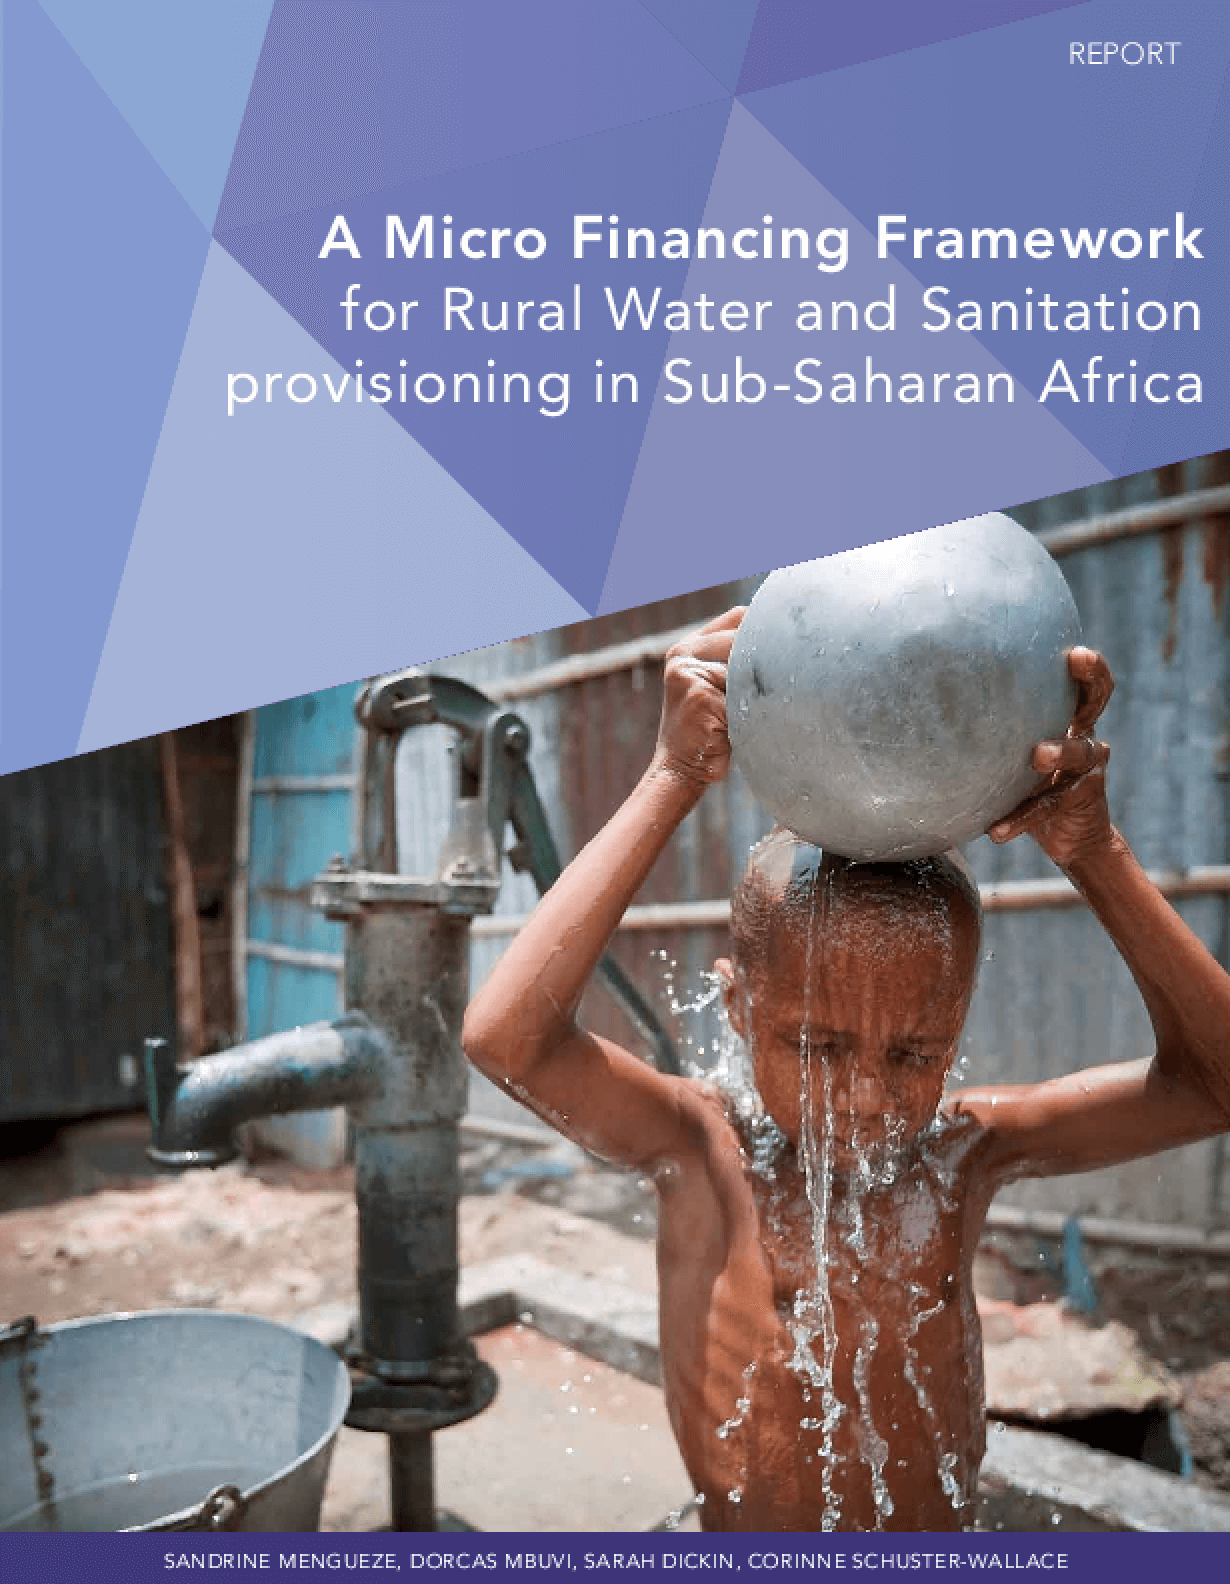 A Micro Financing Framework for Rural Water and Sanitation Provisioning in Sub-Saharan Africa